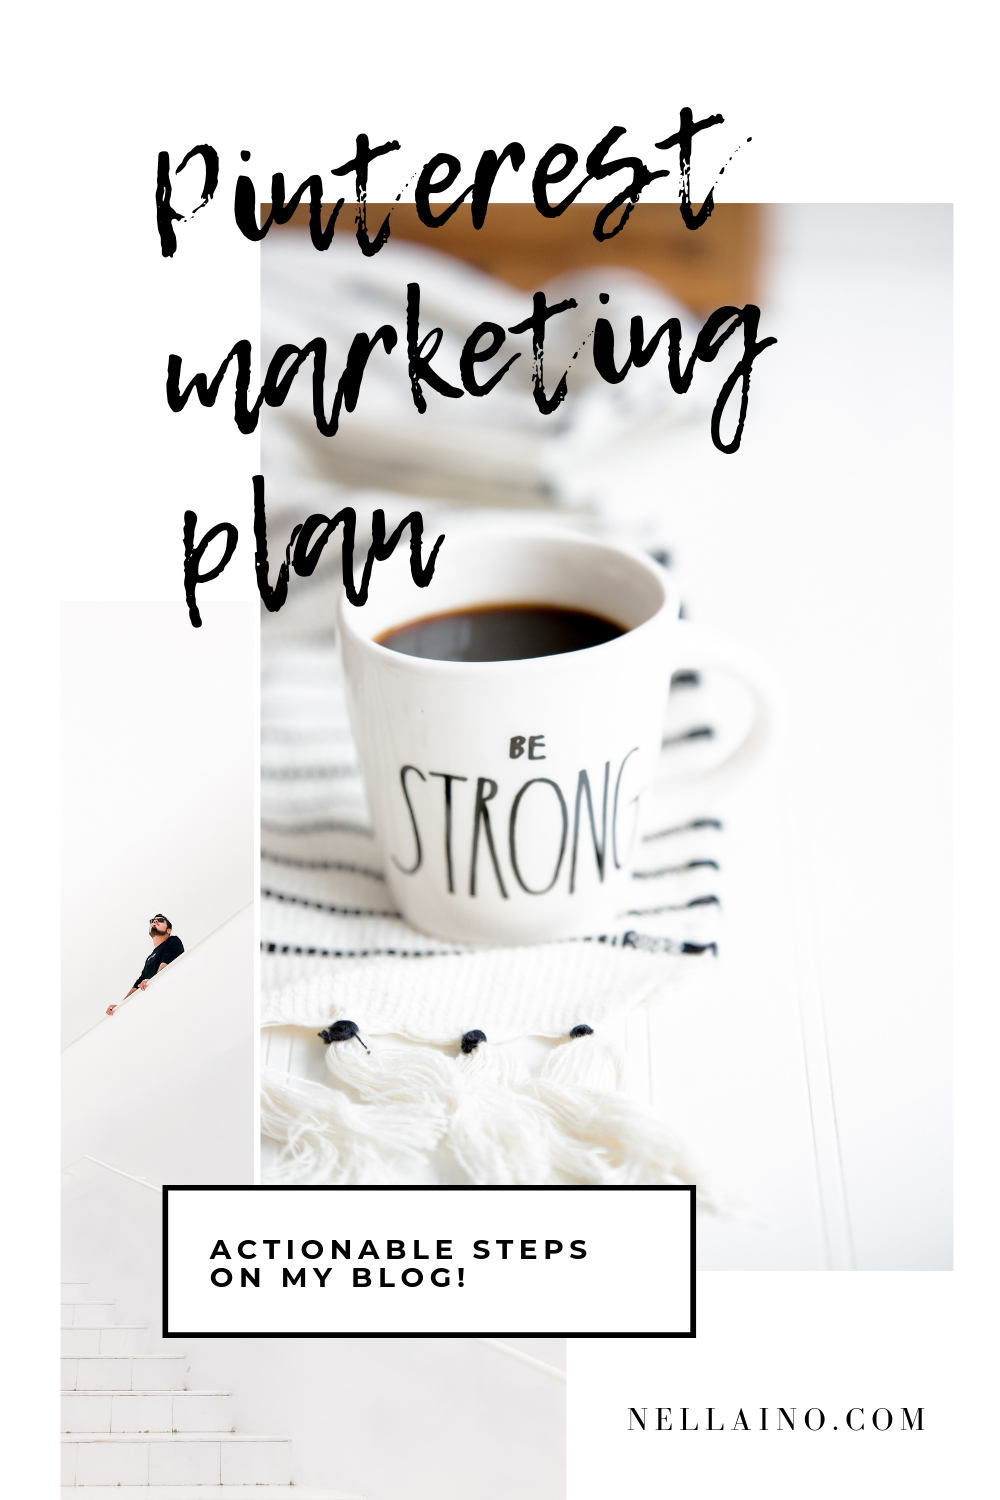 Strategic ways to use Pinterest and create Pinterest marketing plan with Nellaino. Check out the blog post and create your Pinterest plan now. www.nellaino.com #pinterestplan #pinterestmarketing